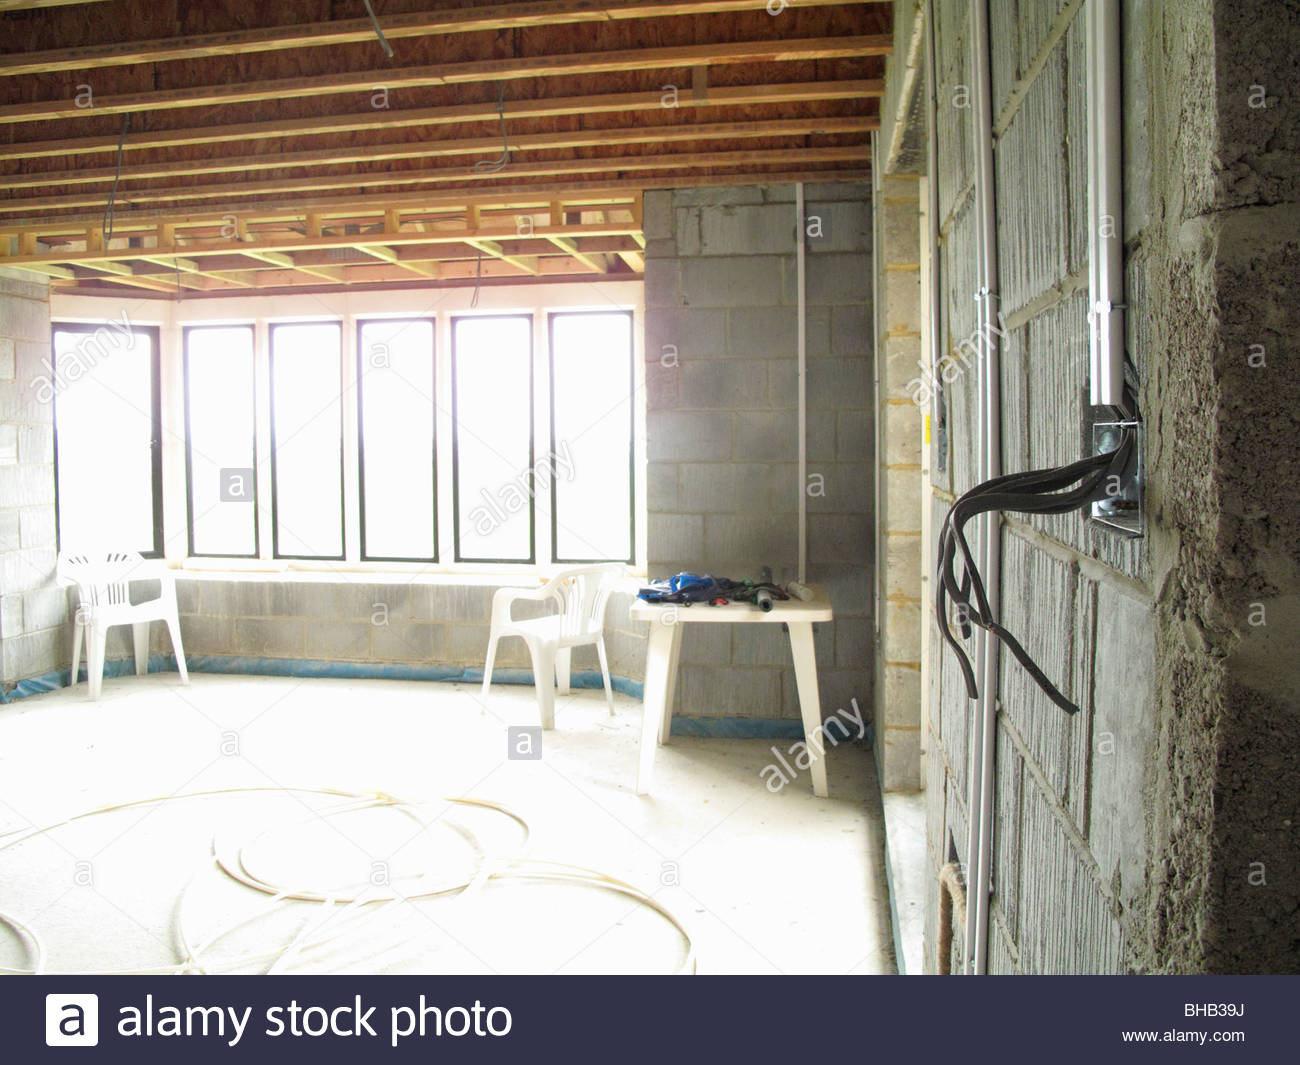 hight resolution of exposed electrical wires in house under construction